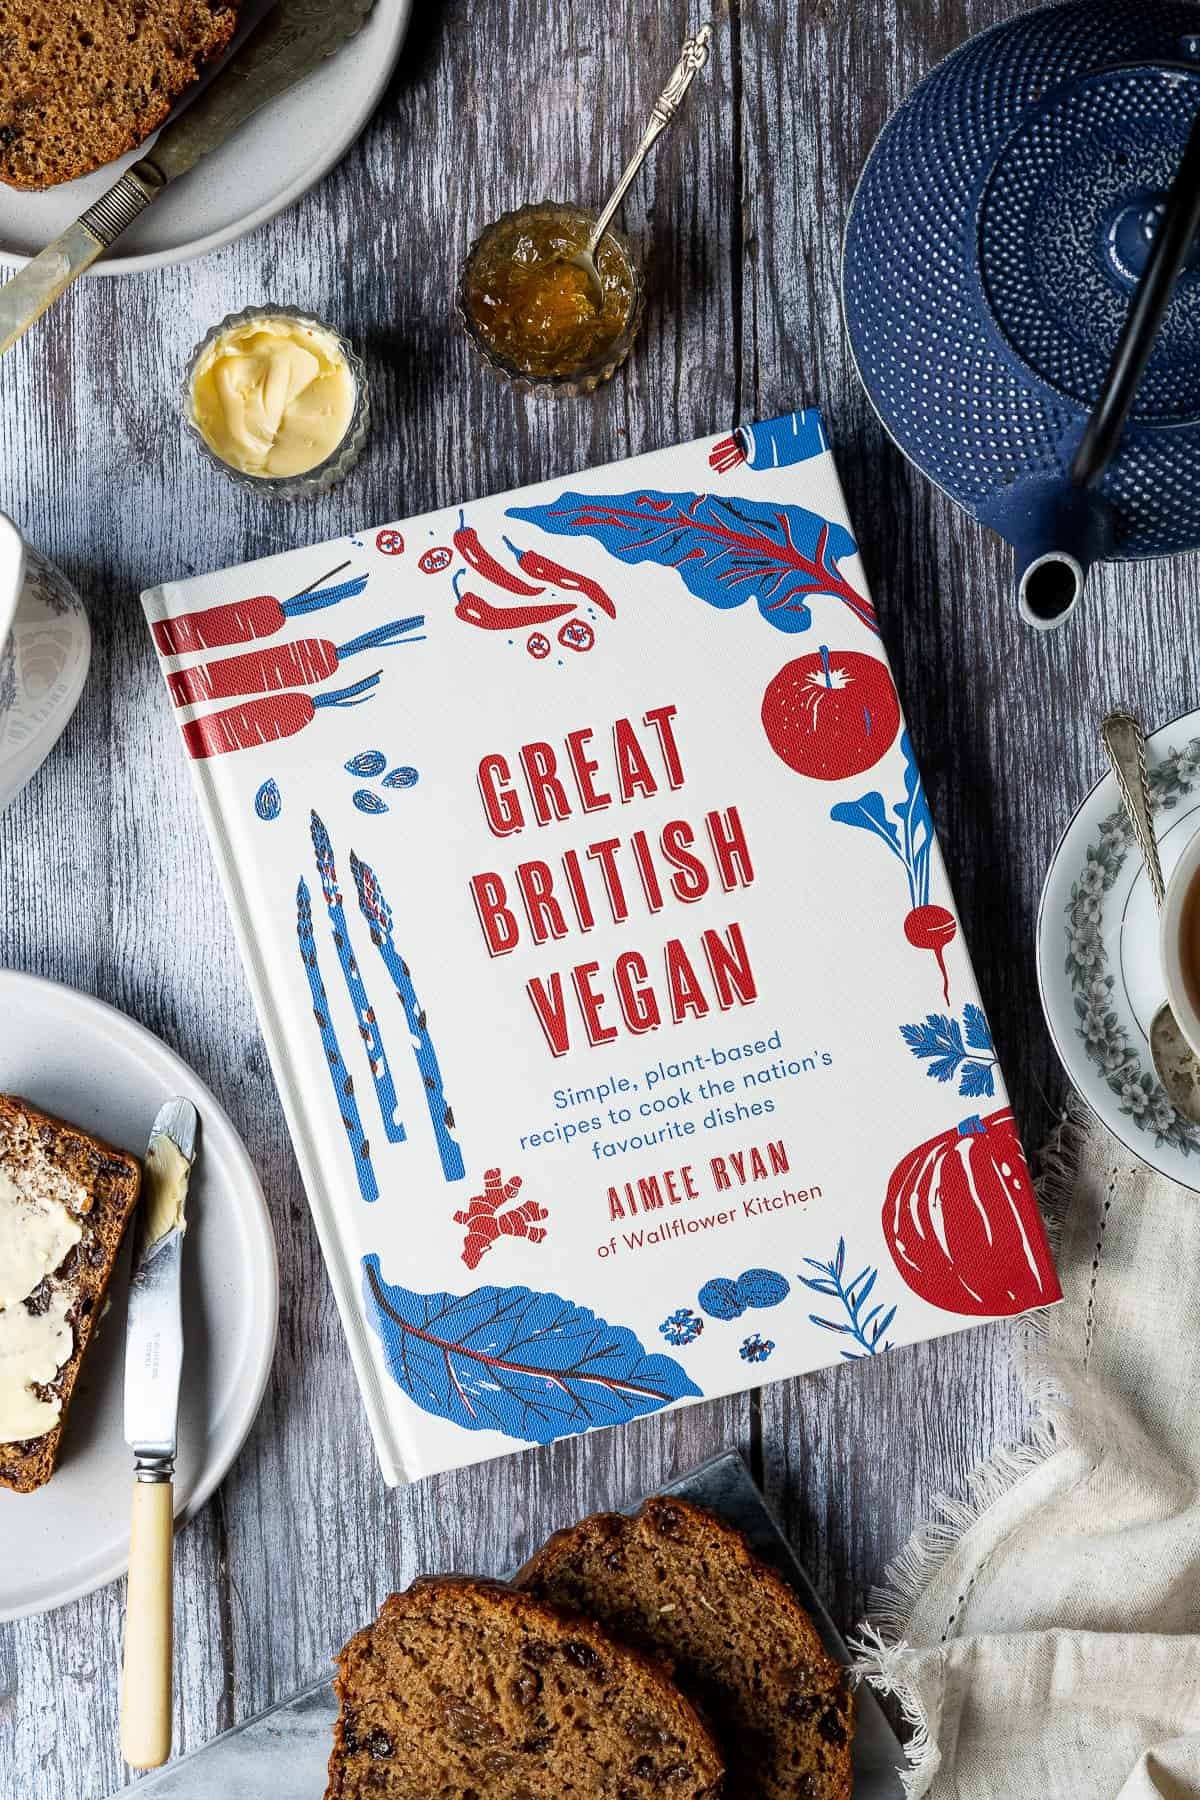 Great British Vegan cookbook on a wooden table surrounded by breakfast crockery.